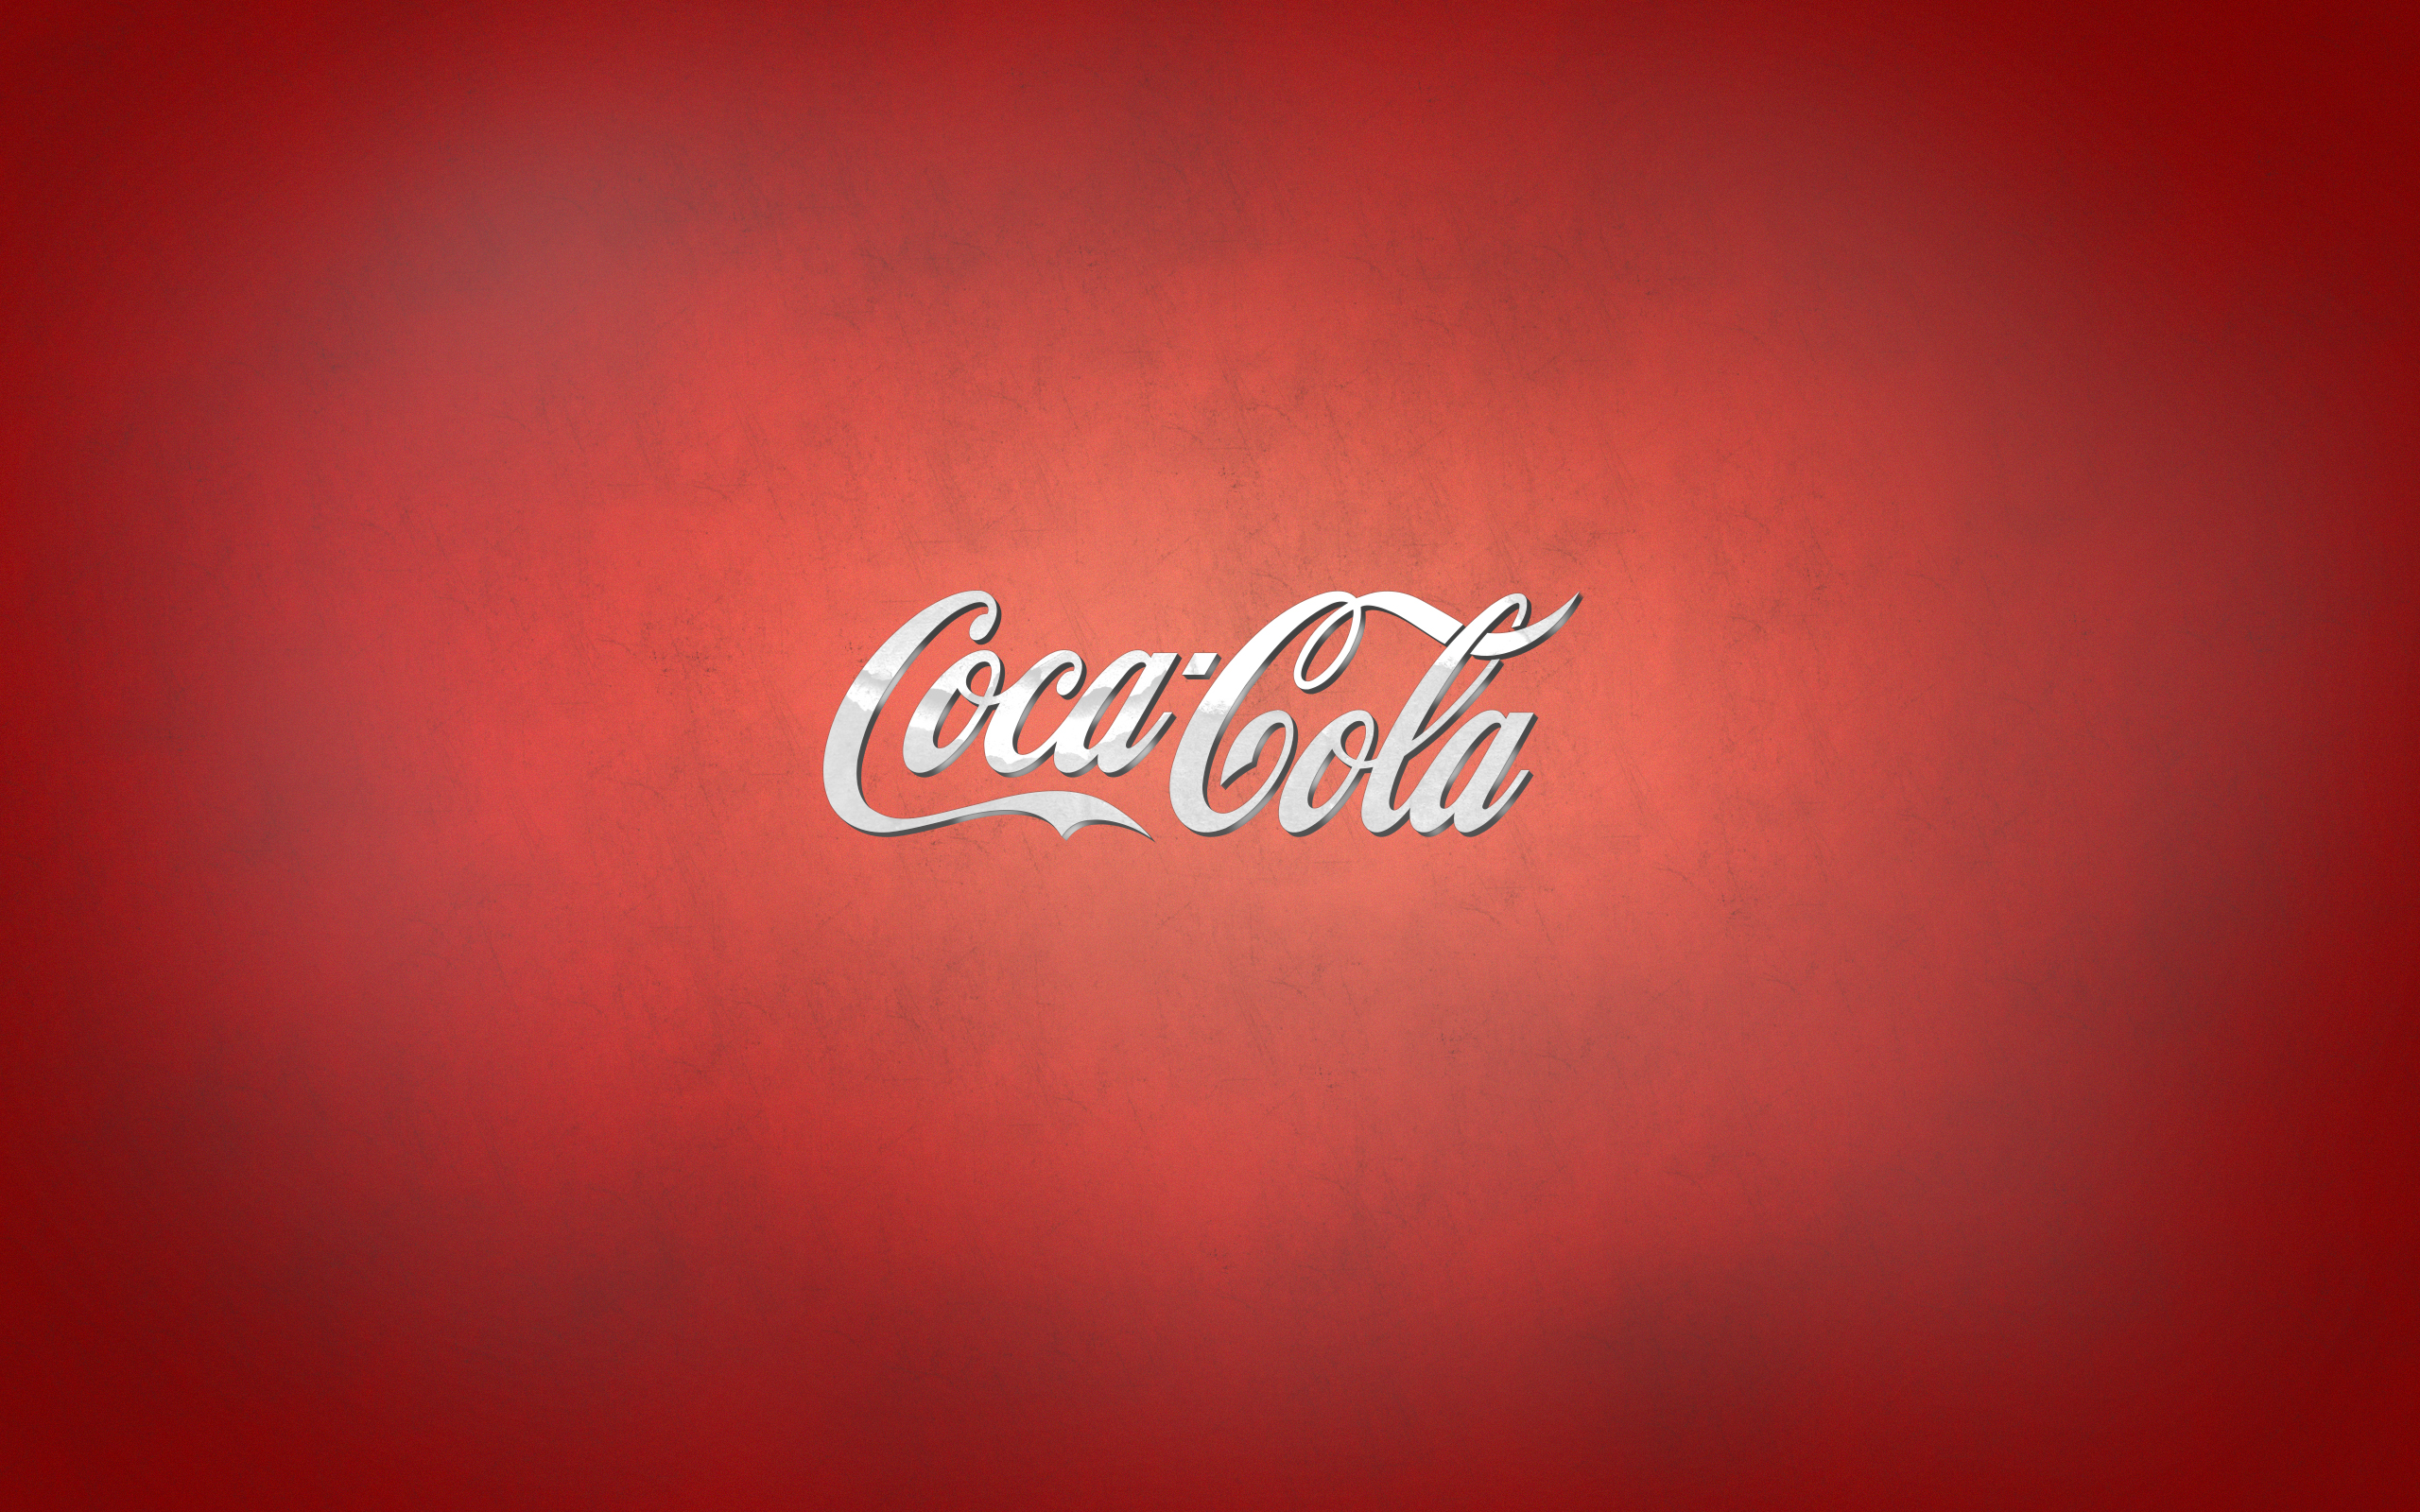 Live Coca Cola Wallpapers | Coca Cola Wallpapers Collection